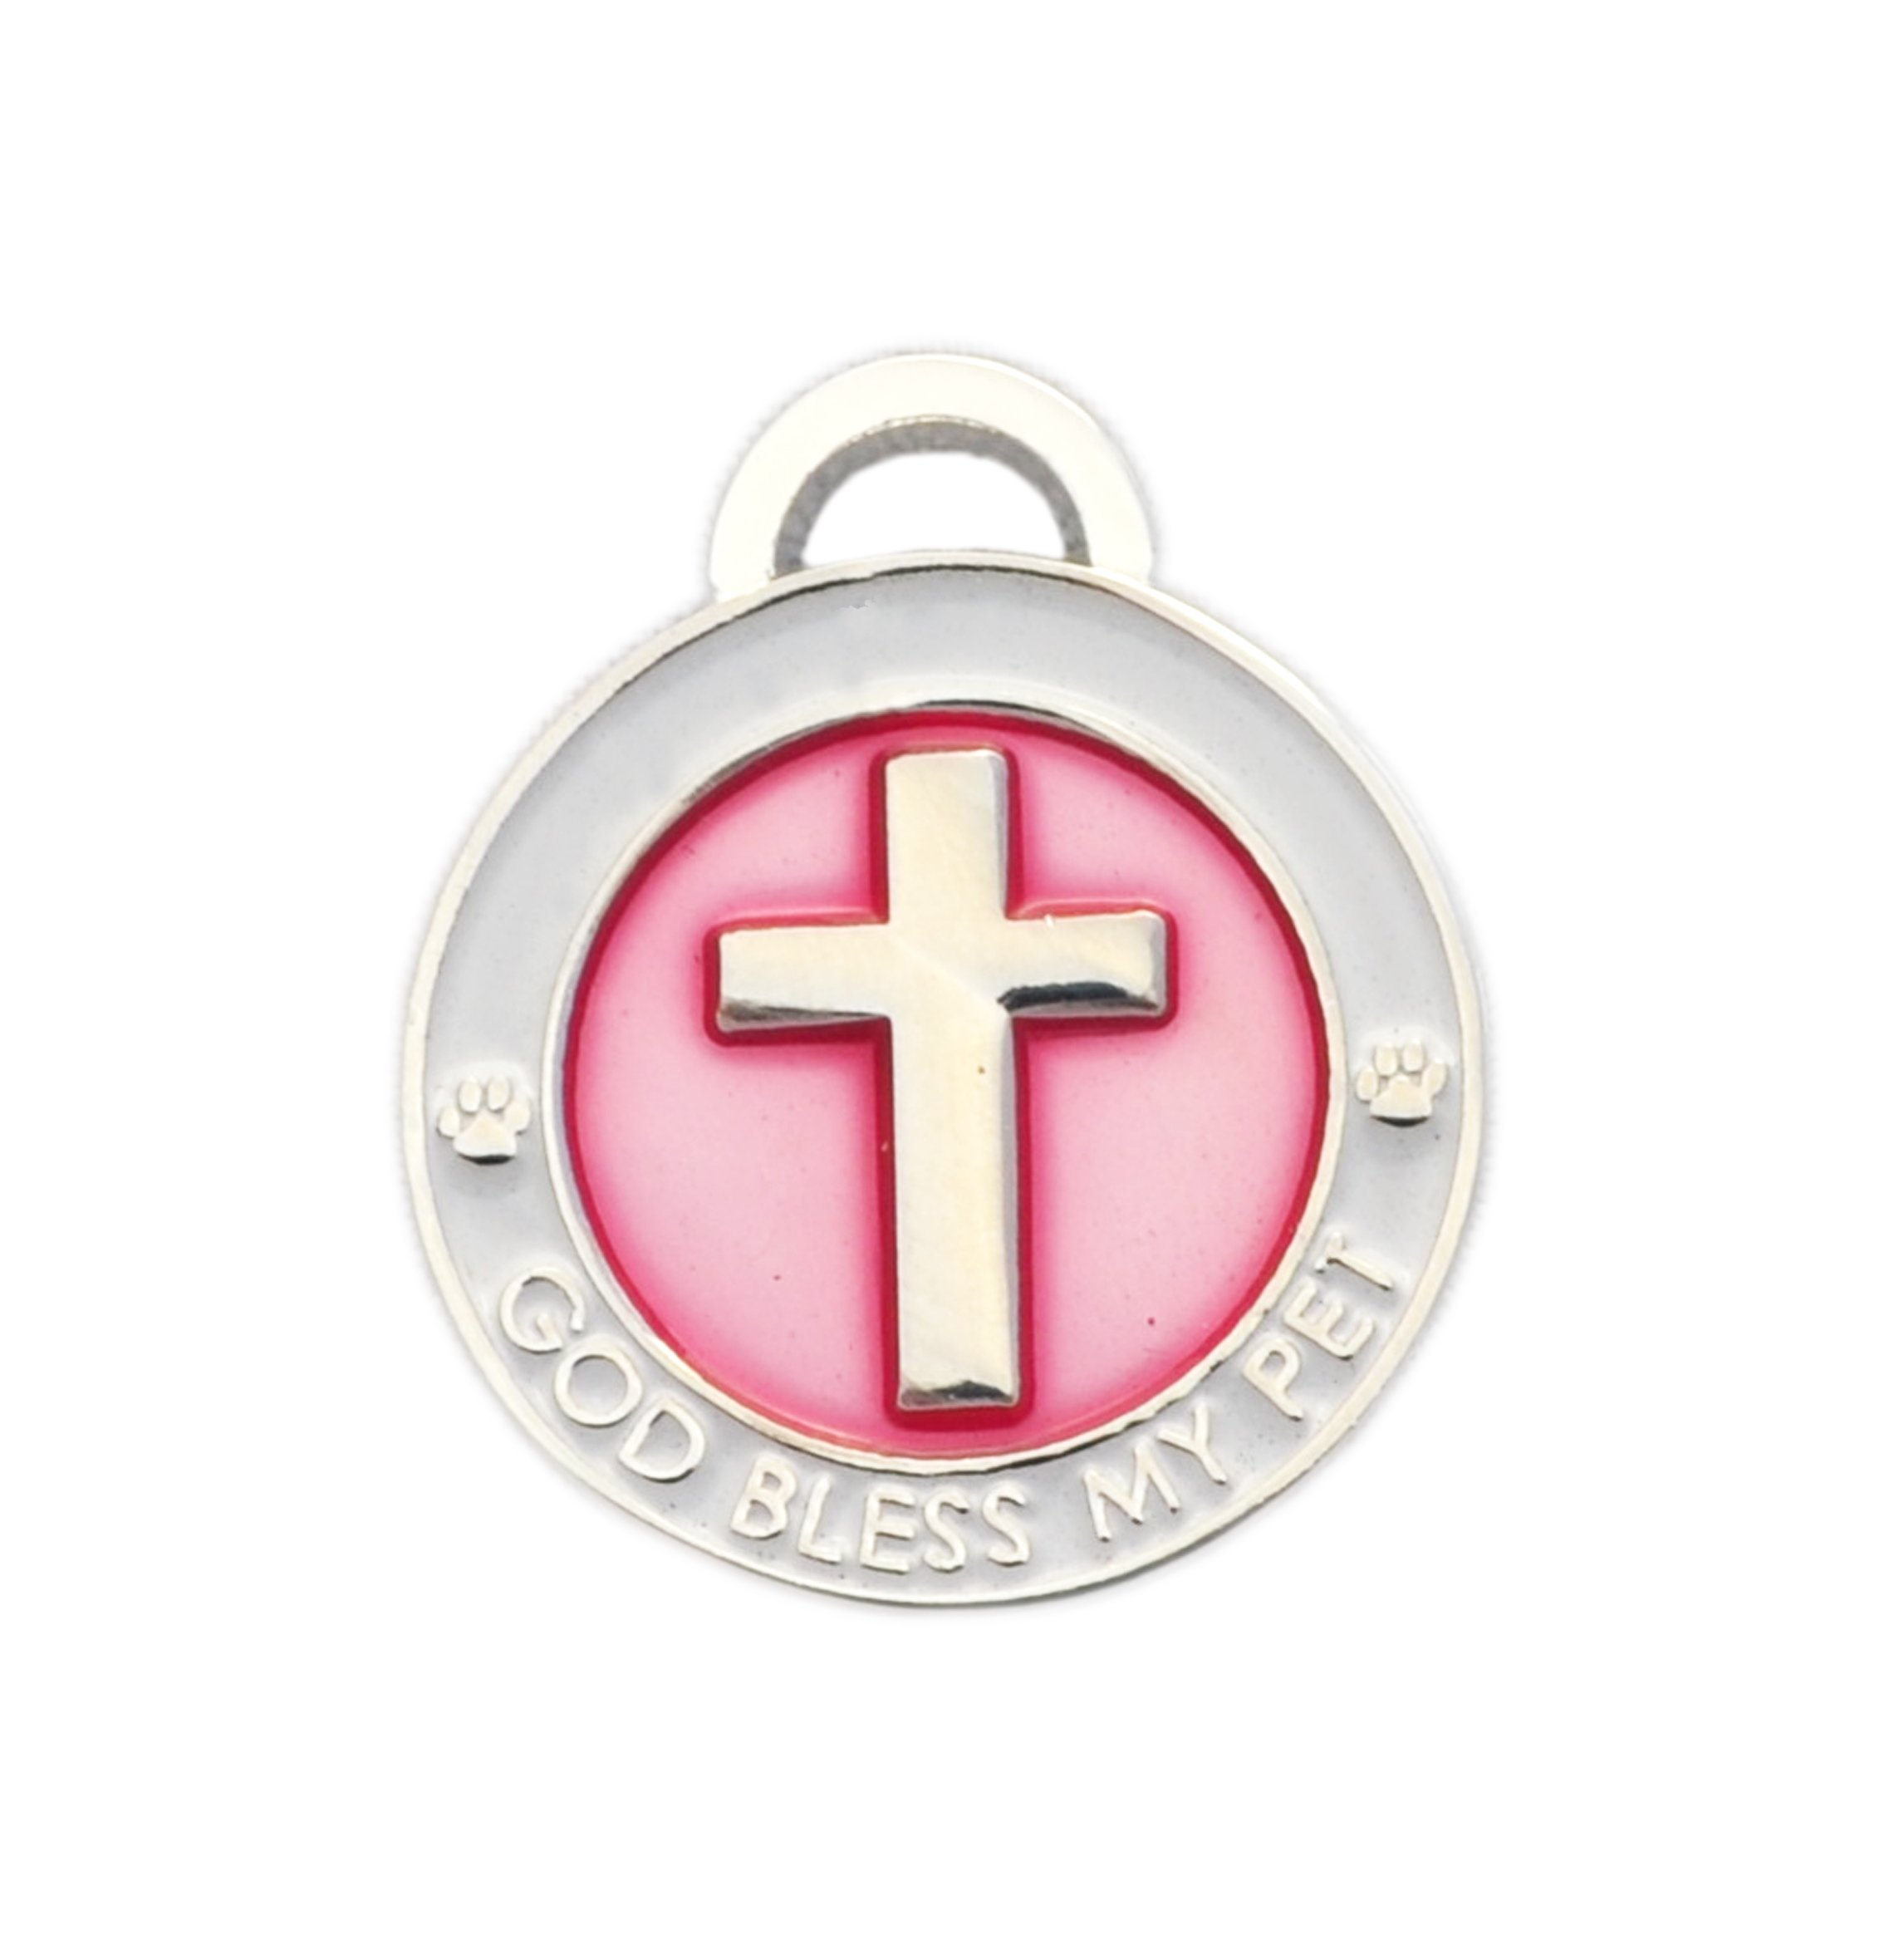 Luxepets Pet Collar Charm, Cross, Small, Pink by Luxepets